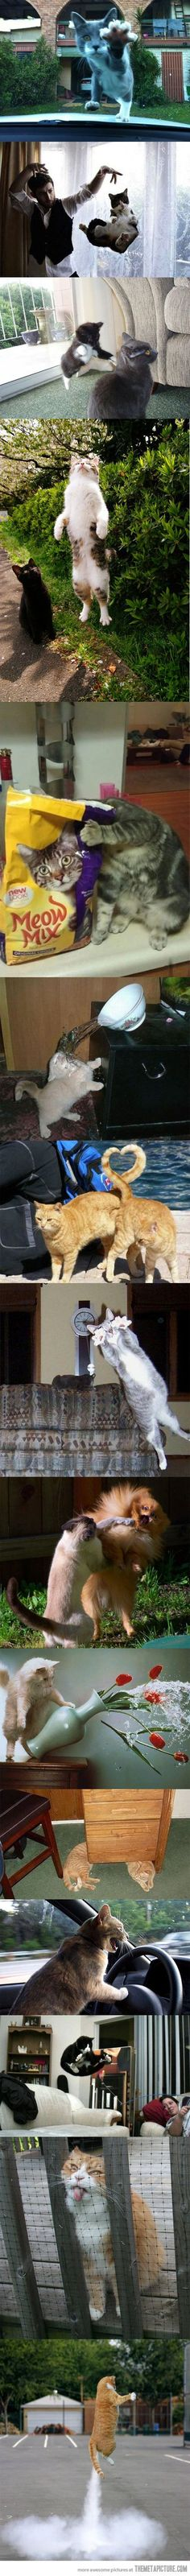 15 perfectly timed cat photos